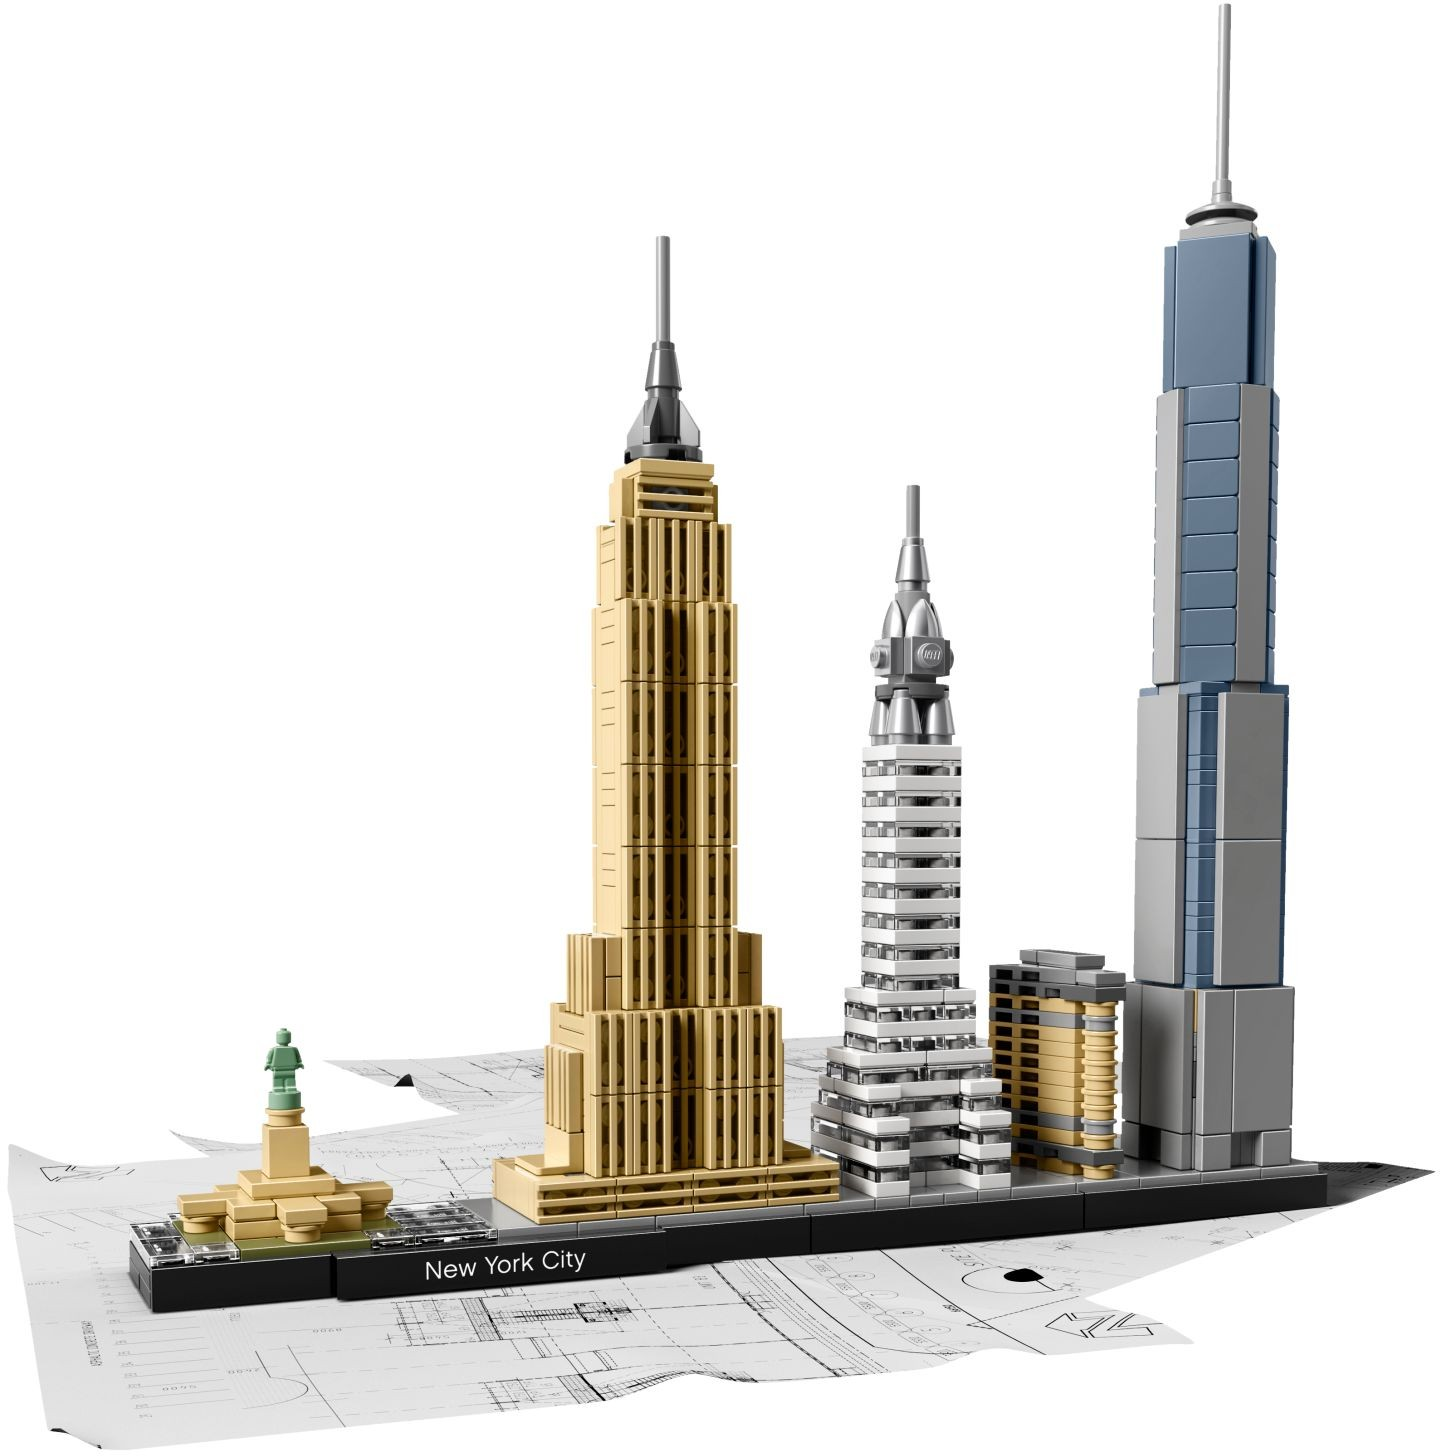 lego architecture york sets building berlin empire state venice buildings skyline legos nyc skylines build cities trade center ny